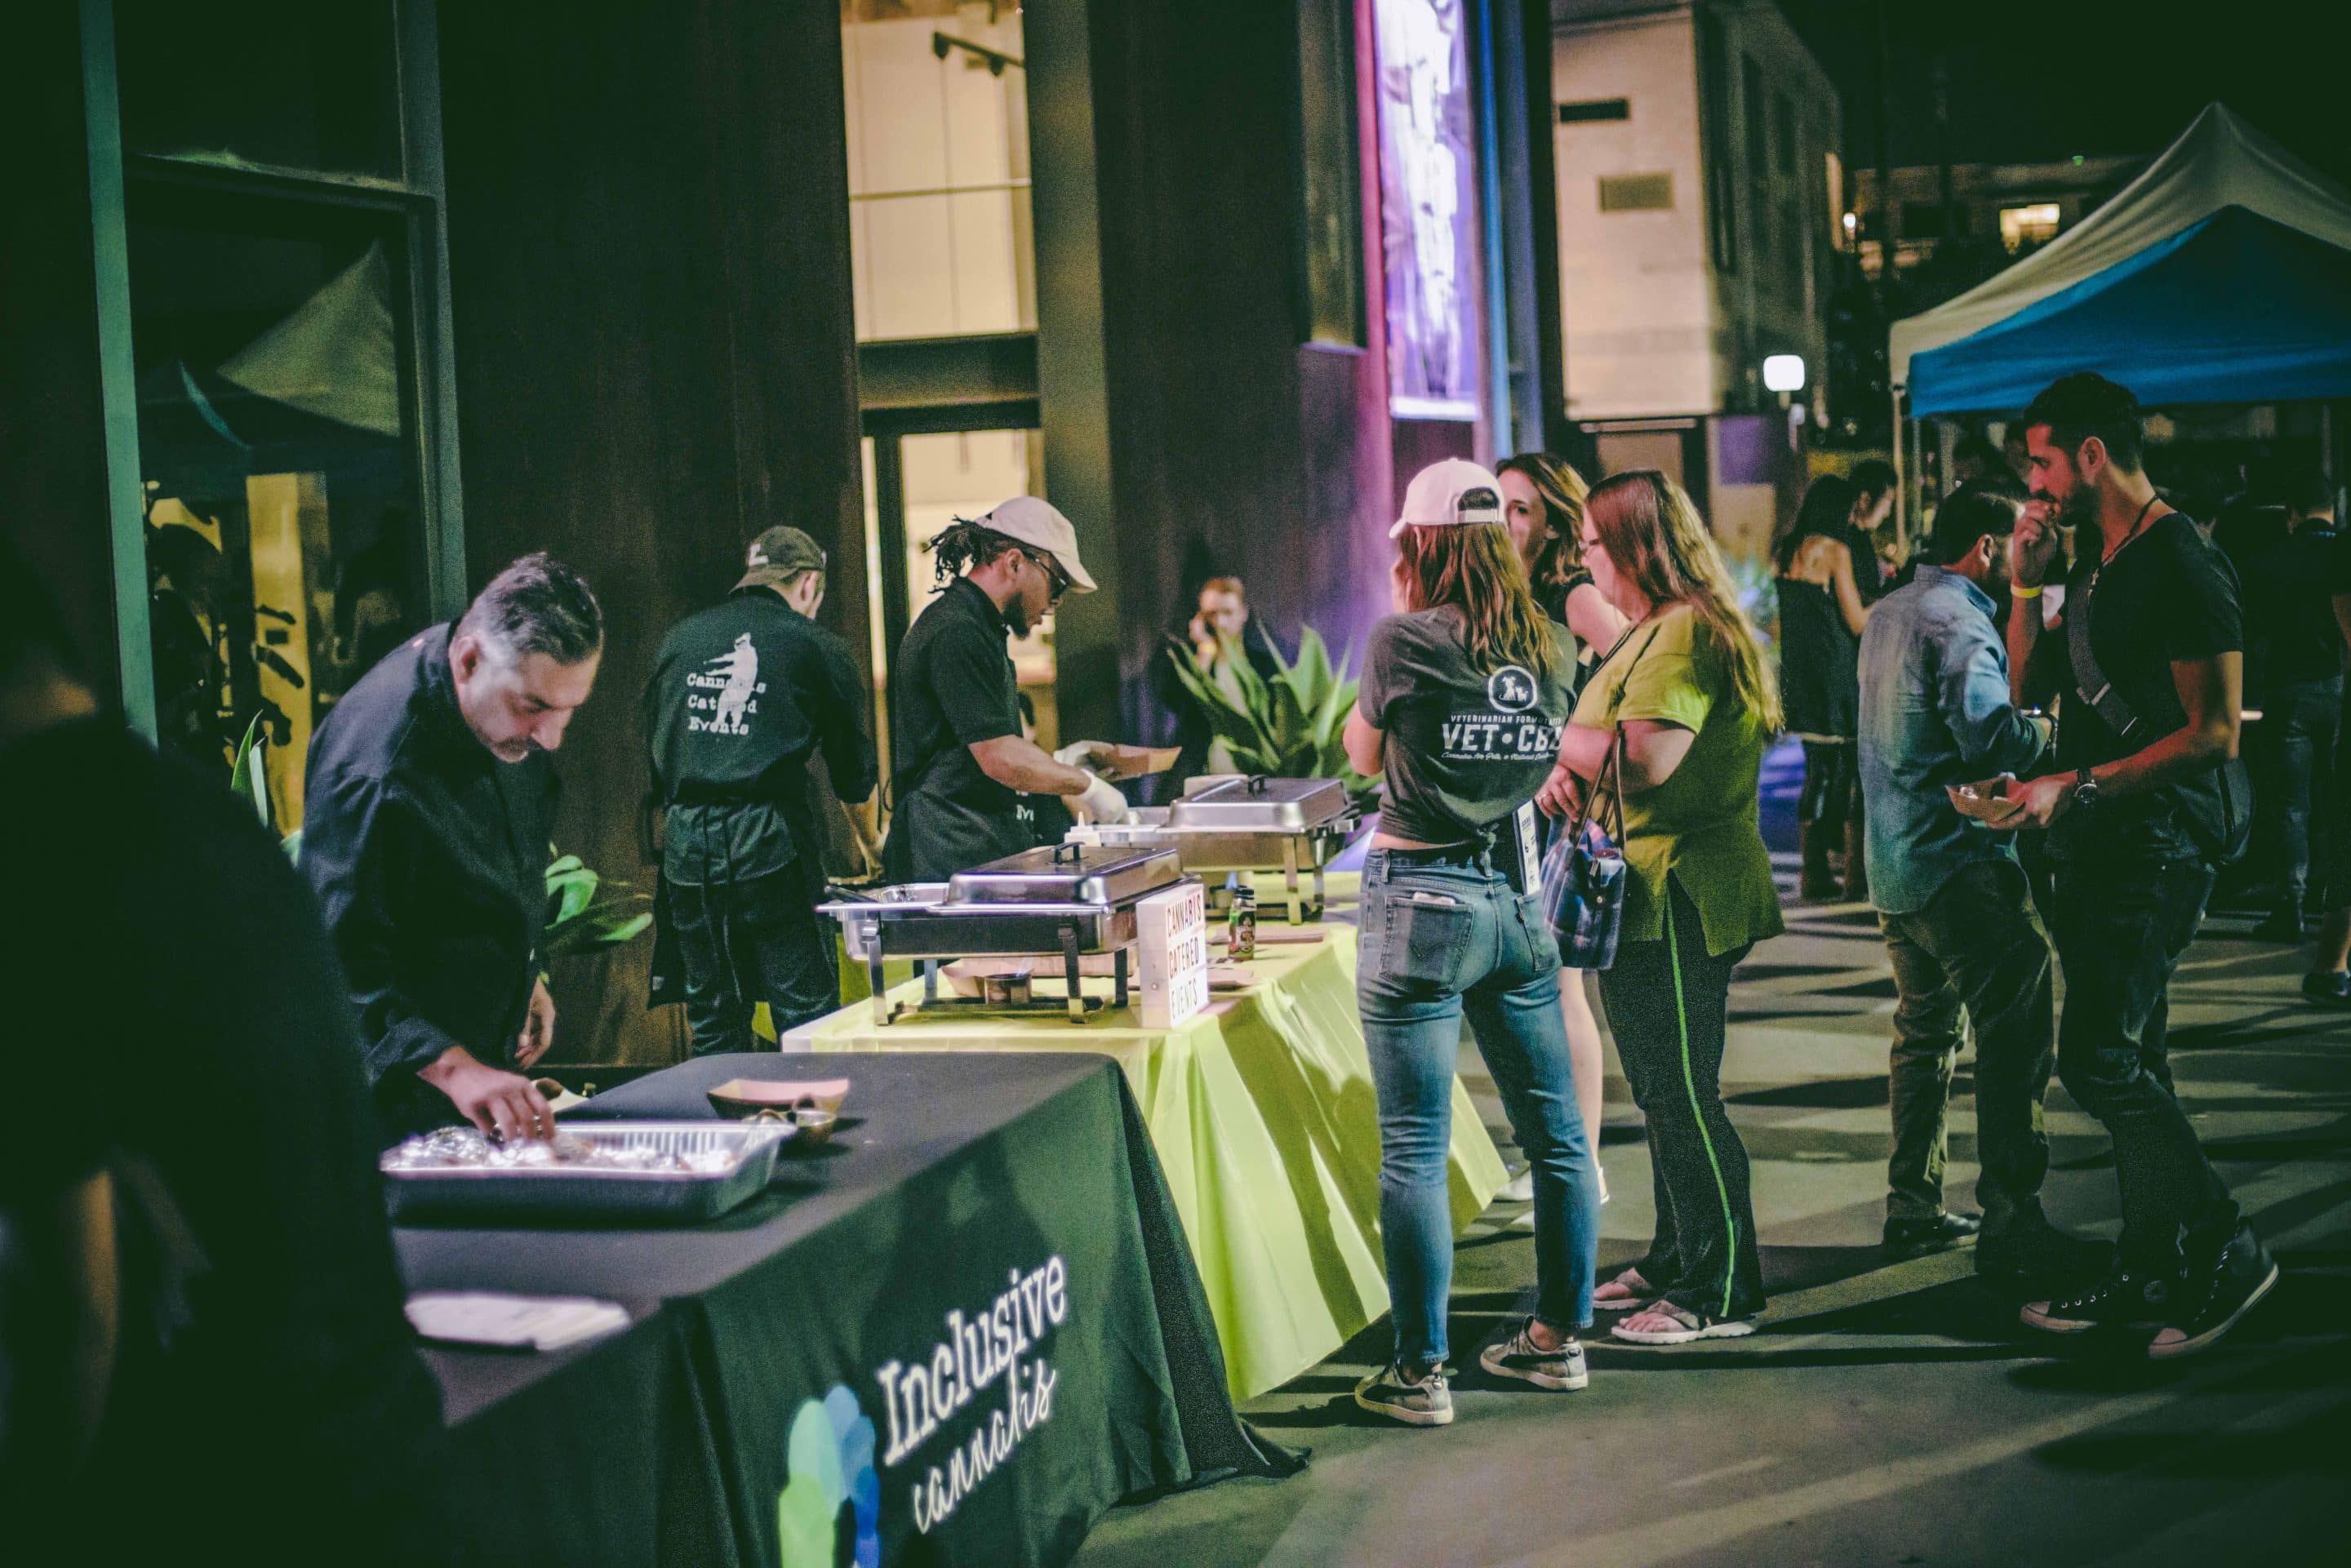 Before the talks began, attendees could eat some food and check out cannabis-related products in front of the museum.